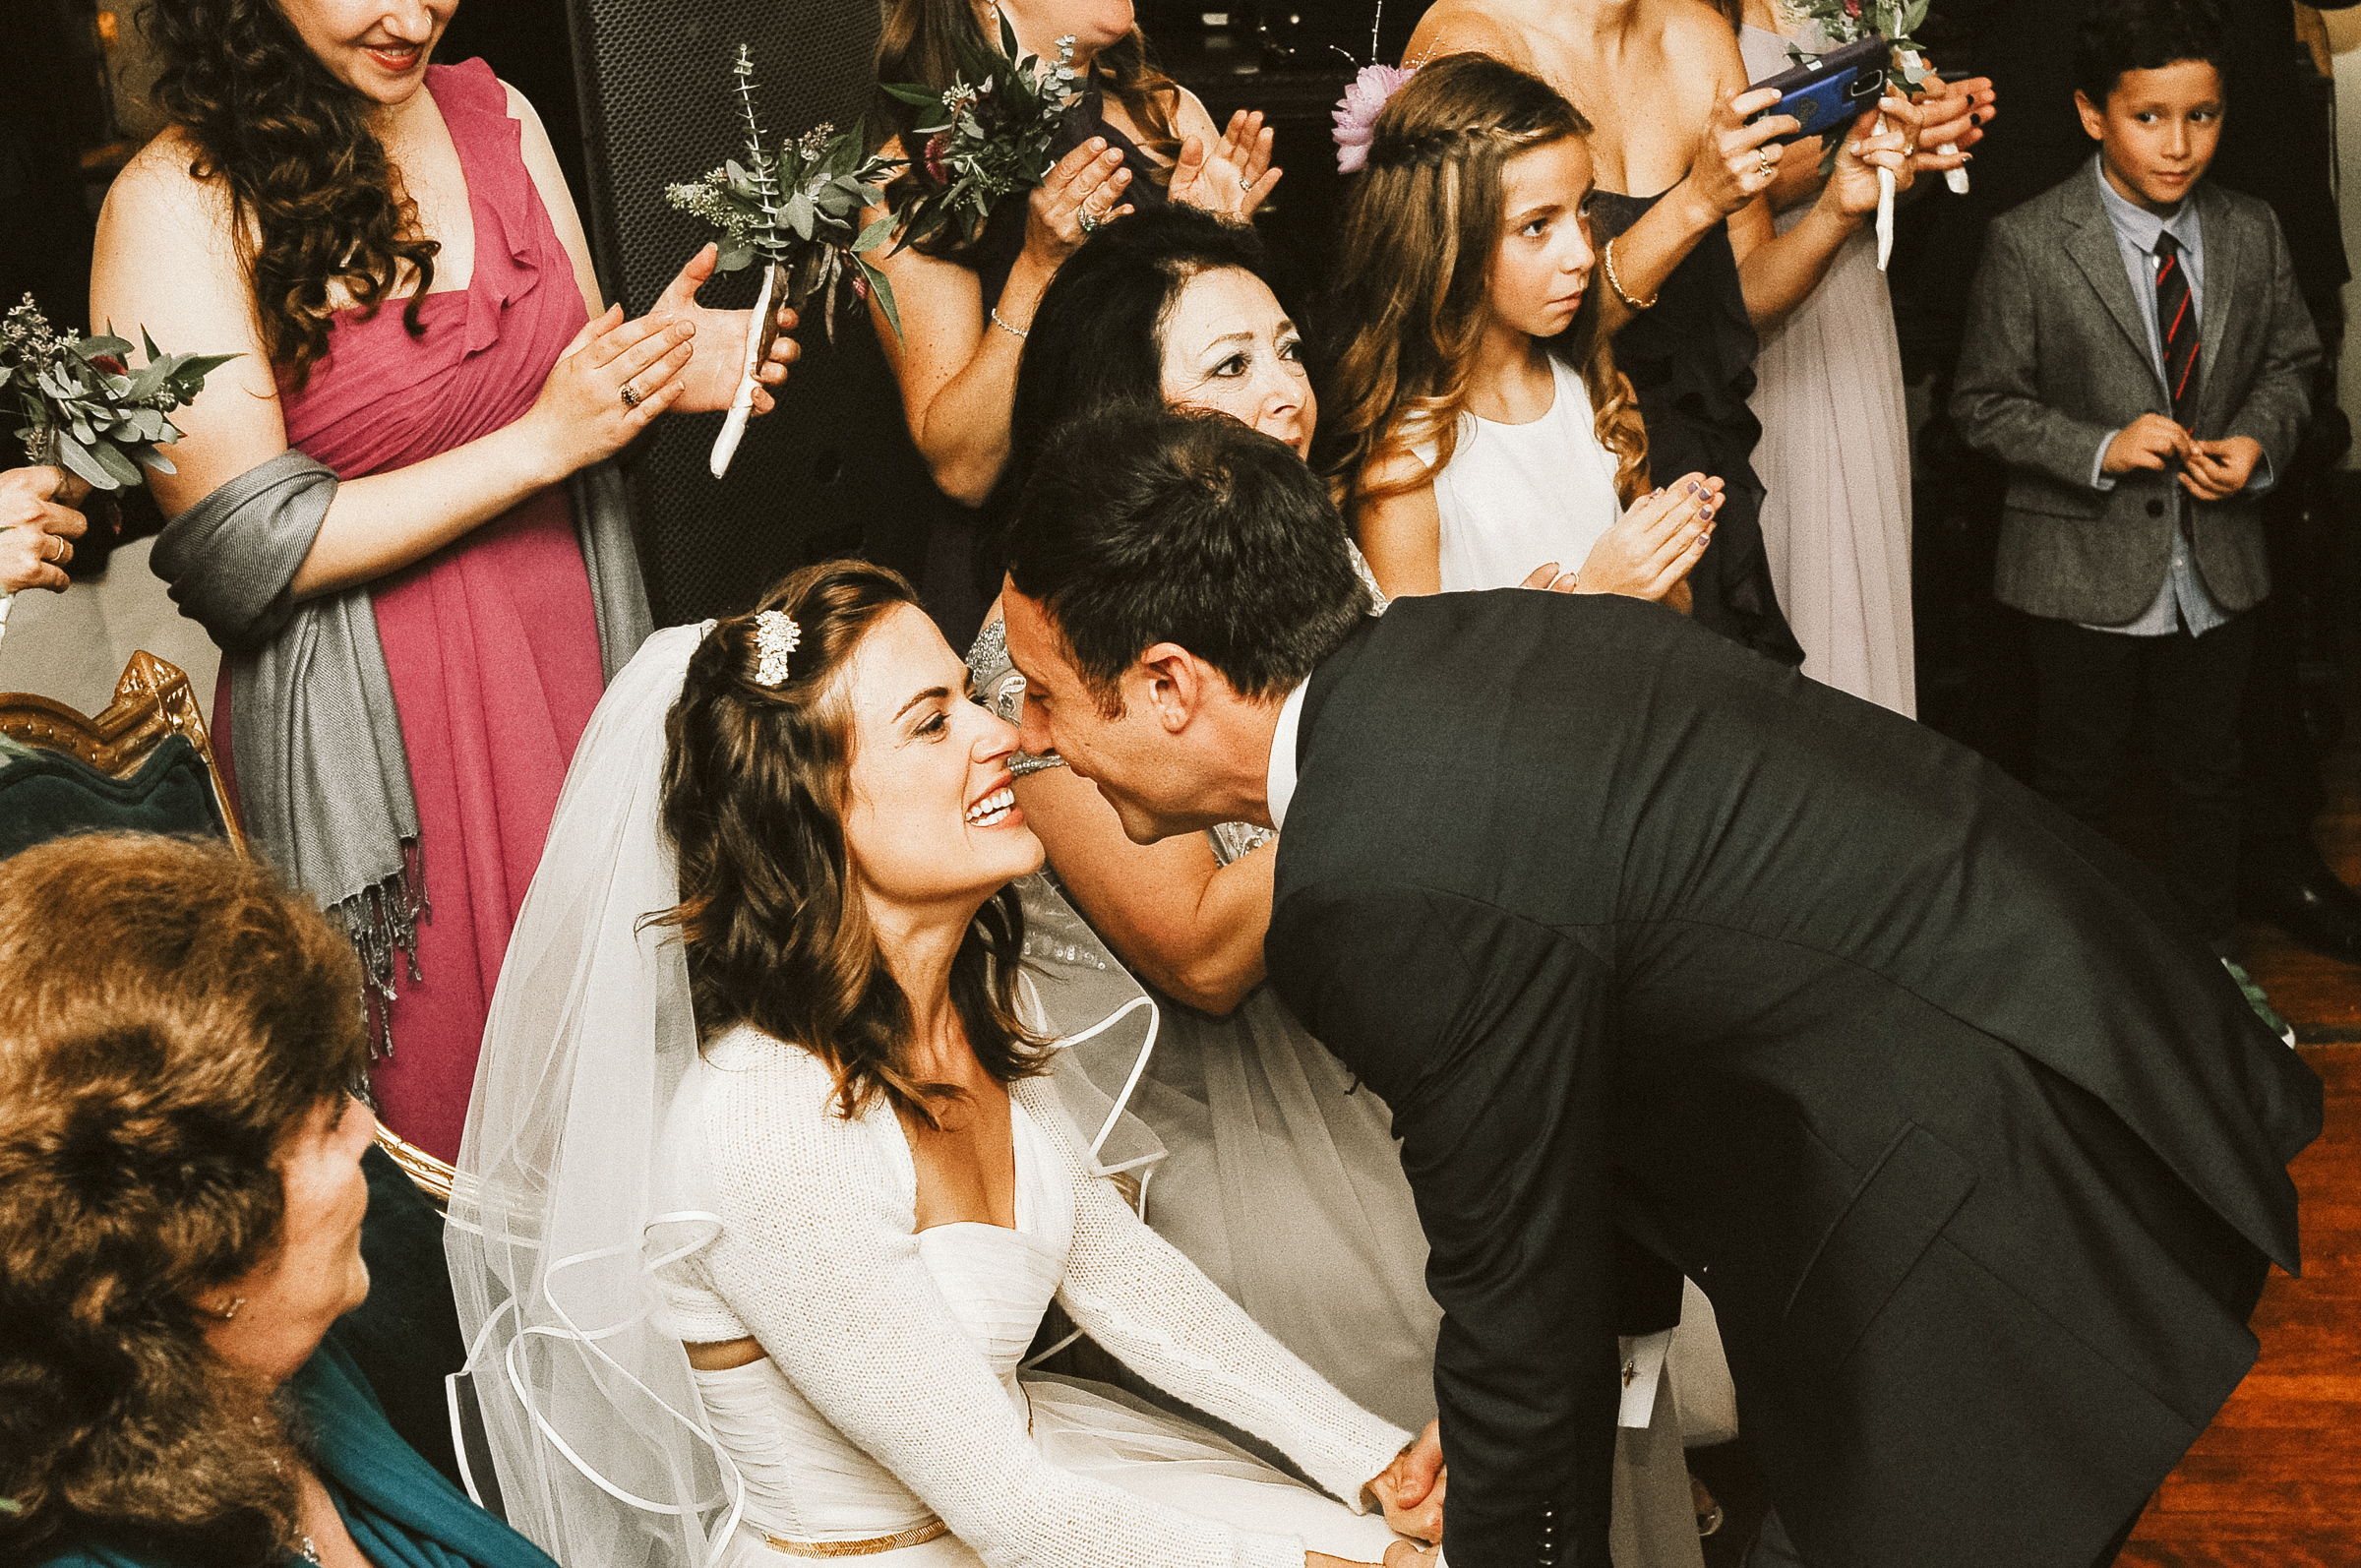 Jen and Drew's Wedding Edited 2019 web-41.jpg